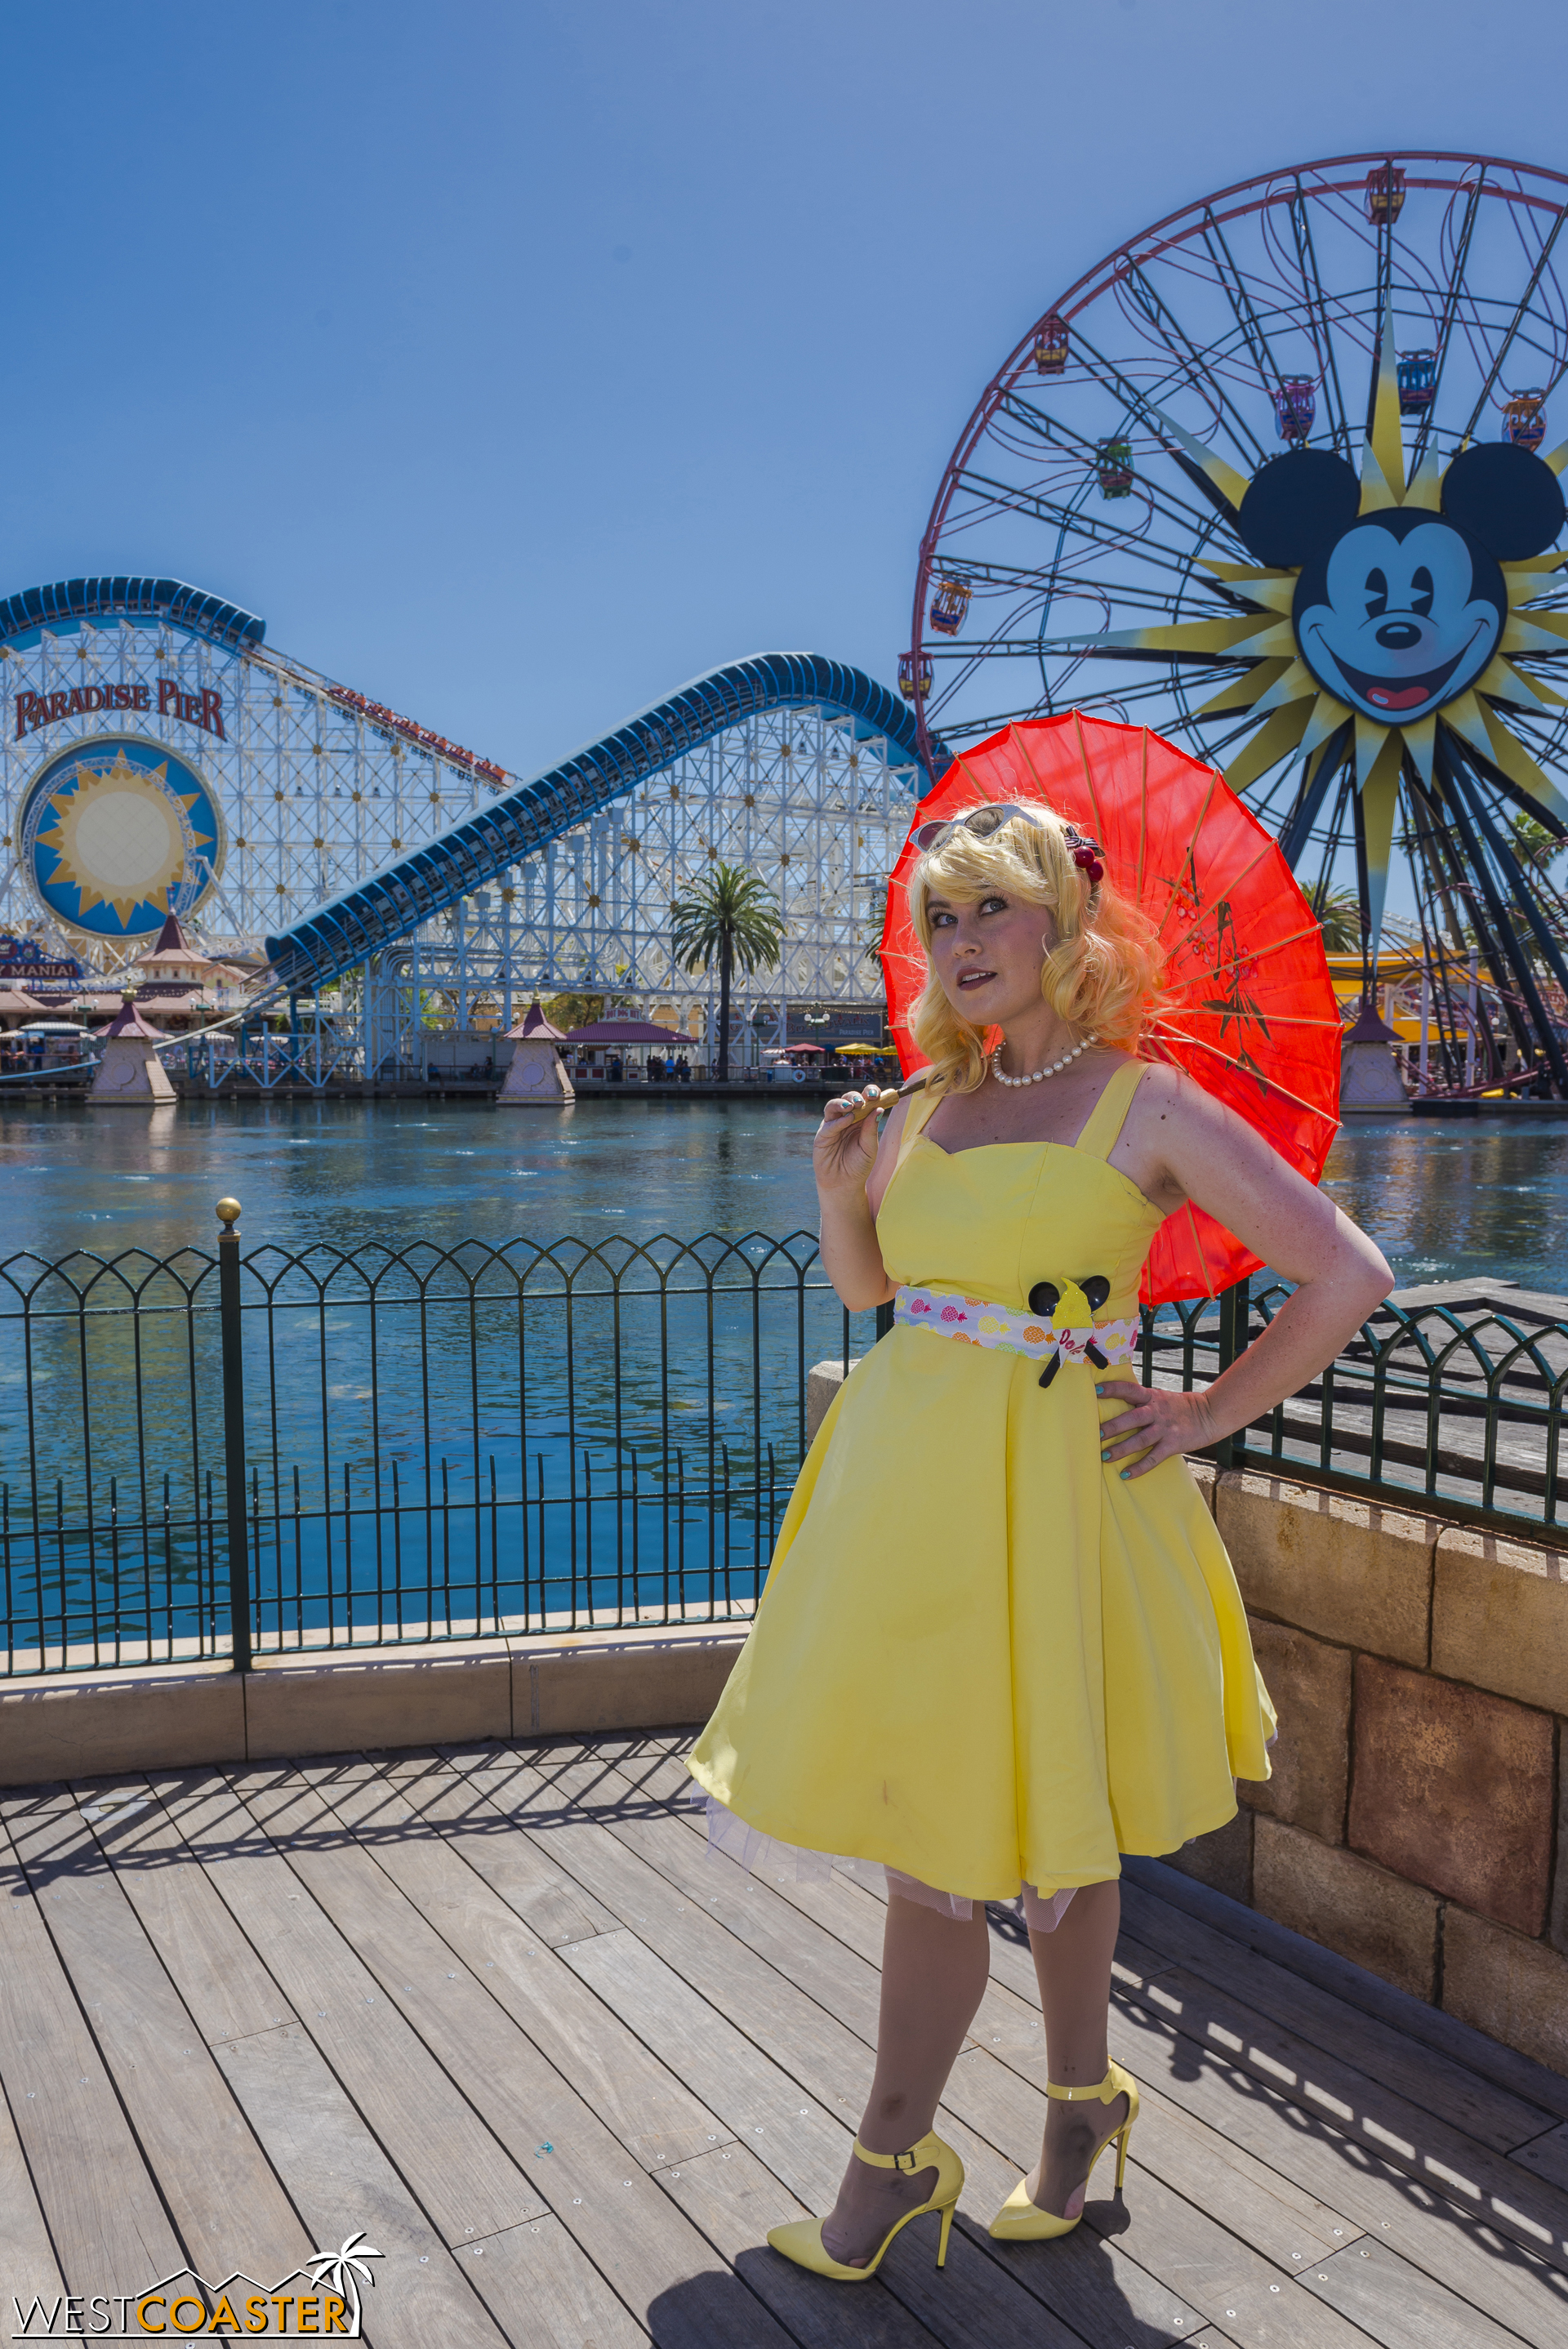 Other Disneybound ideas? How about food? Like Dole Whip?